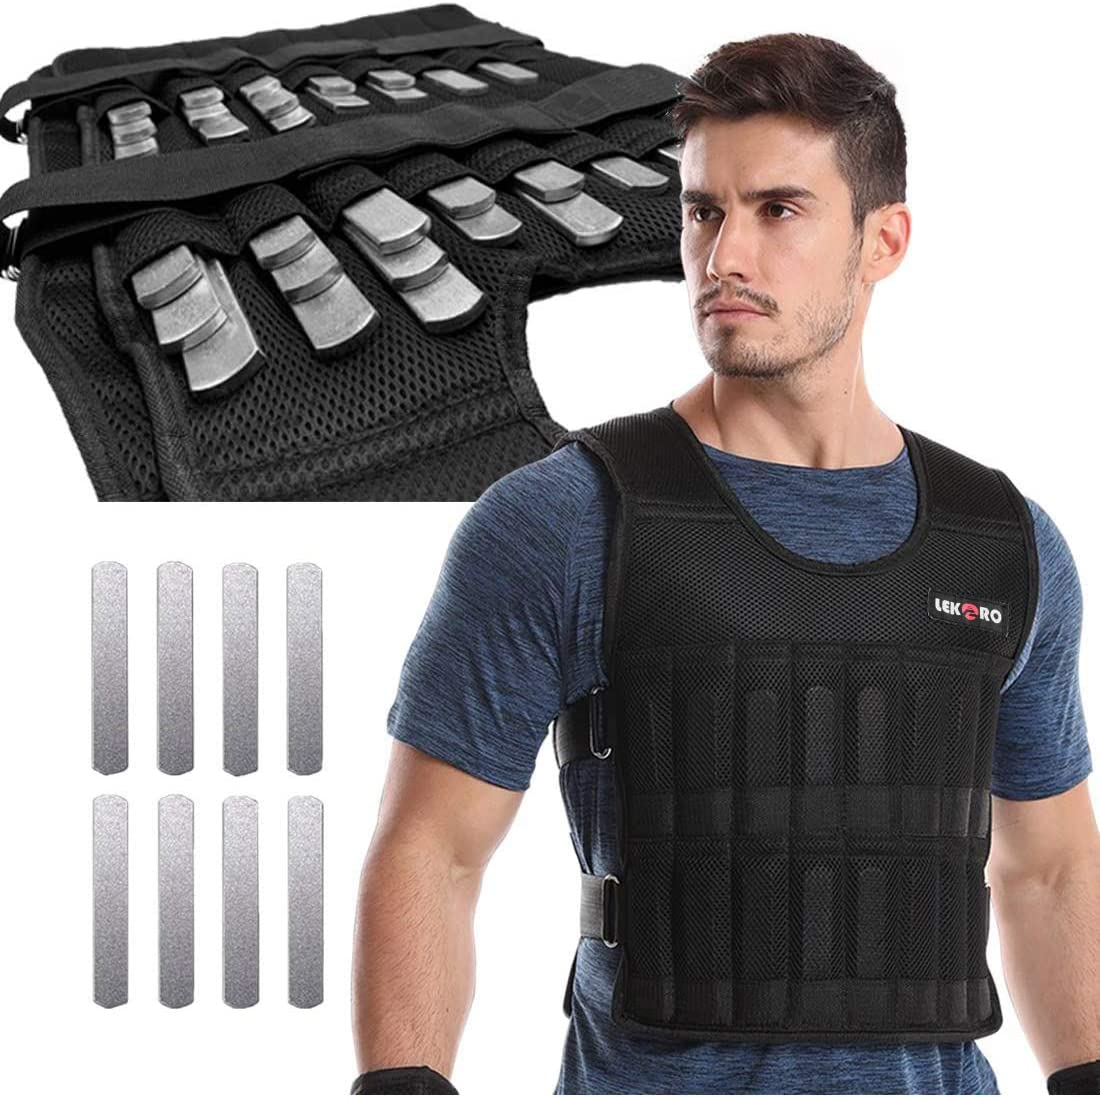 precauti Weighted Vest Adjustable Waistcoat Clothing Breathable Strength Training Jacket for Workout Fitness